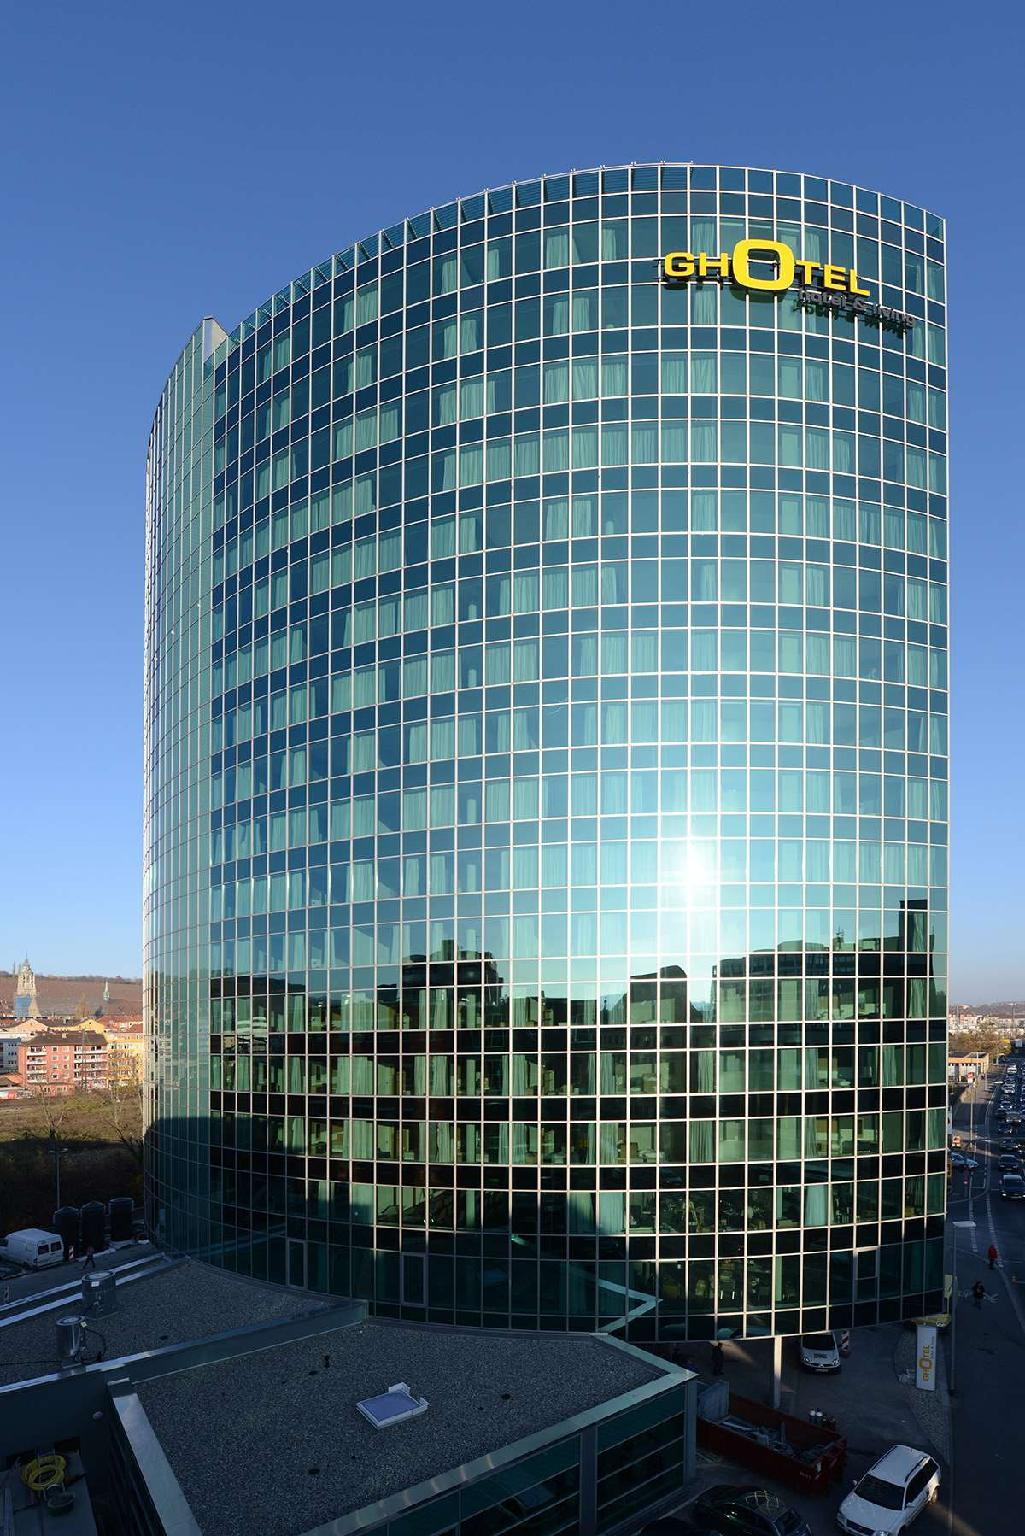 GHOTEL Hotel And Living Wuerzburg